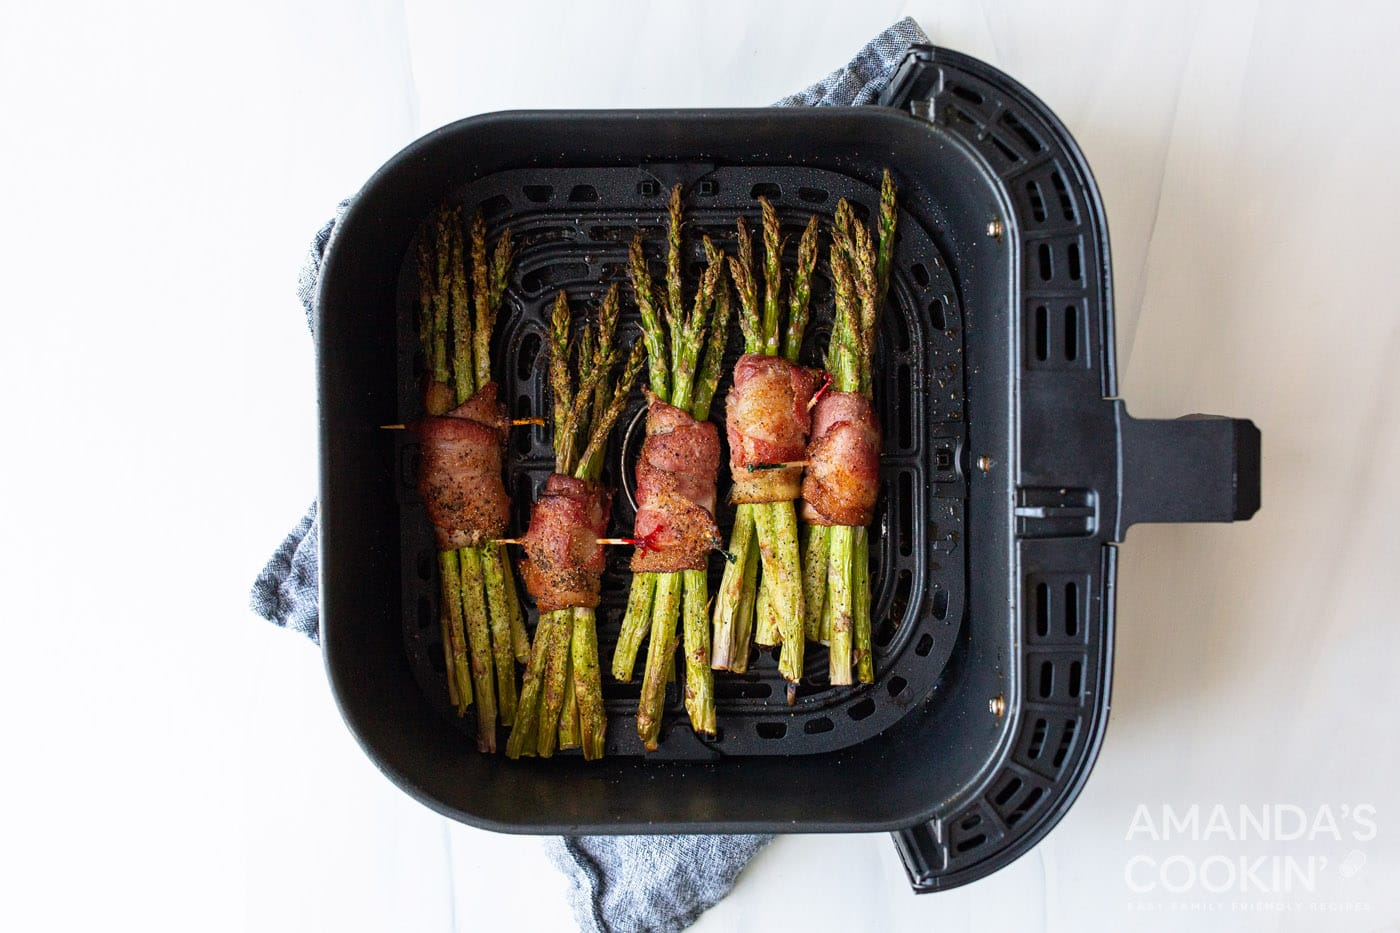 cooked air fryer bacon wrapped asparagus